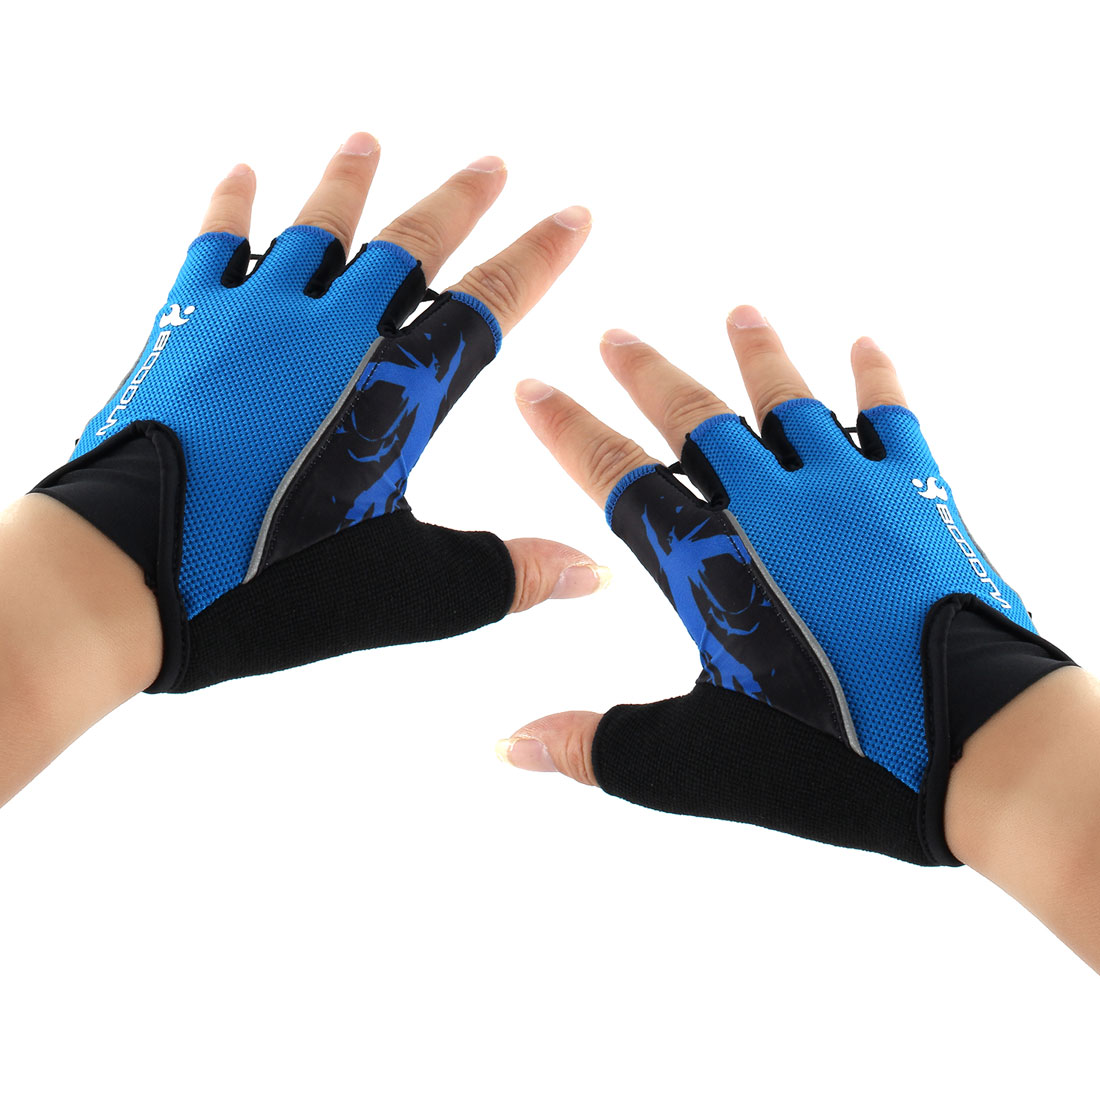 Polyester Exercise Sports Weightlifting Training Workout Protector Half Finger Fitness Gloves Blue S Pair